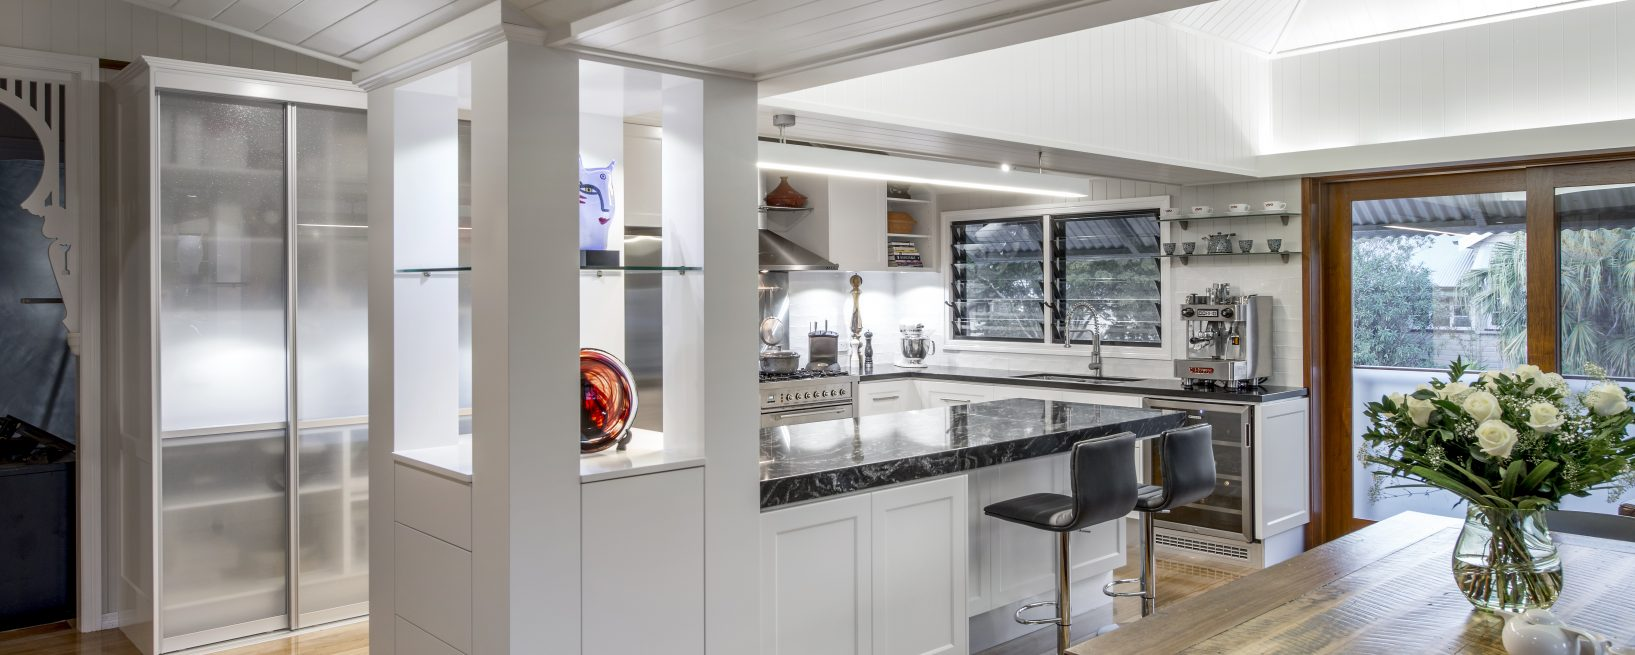 Luxury Kitchen Design Brisbane